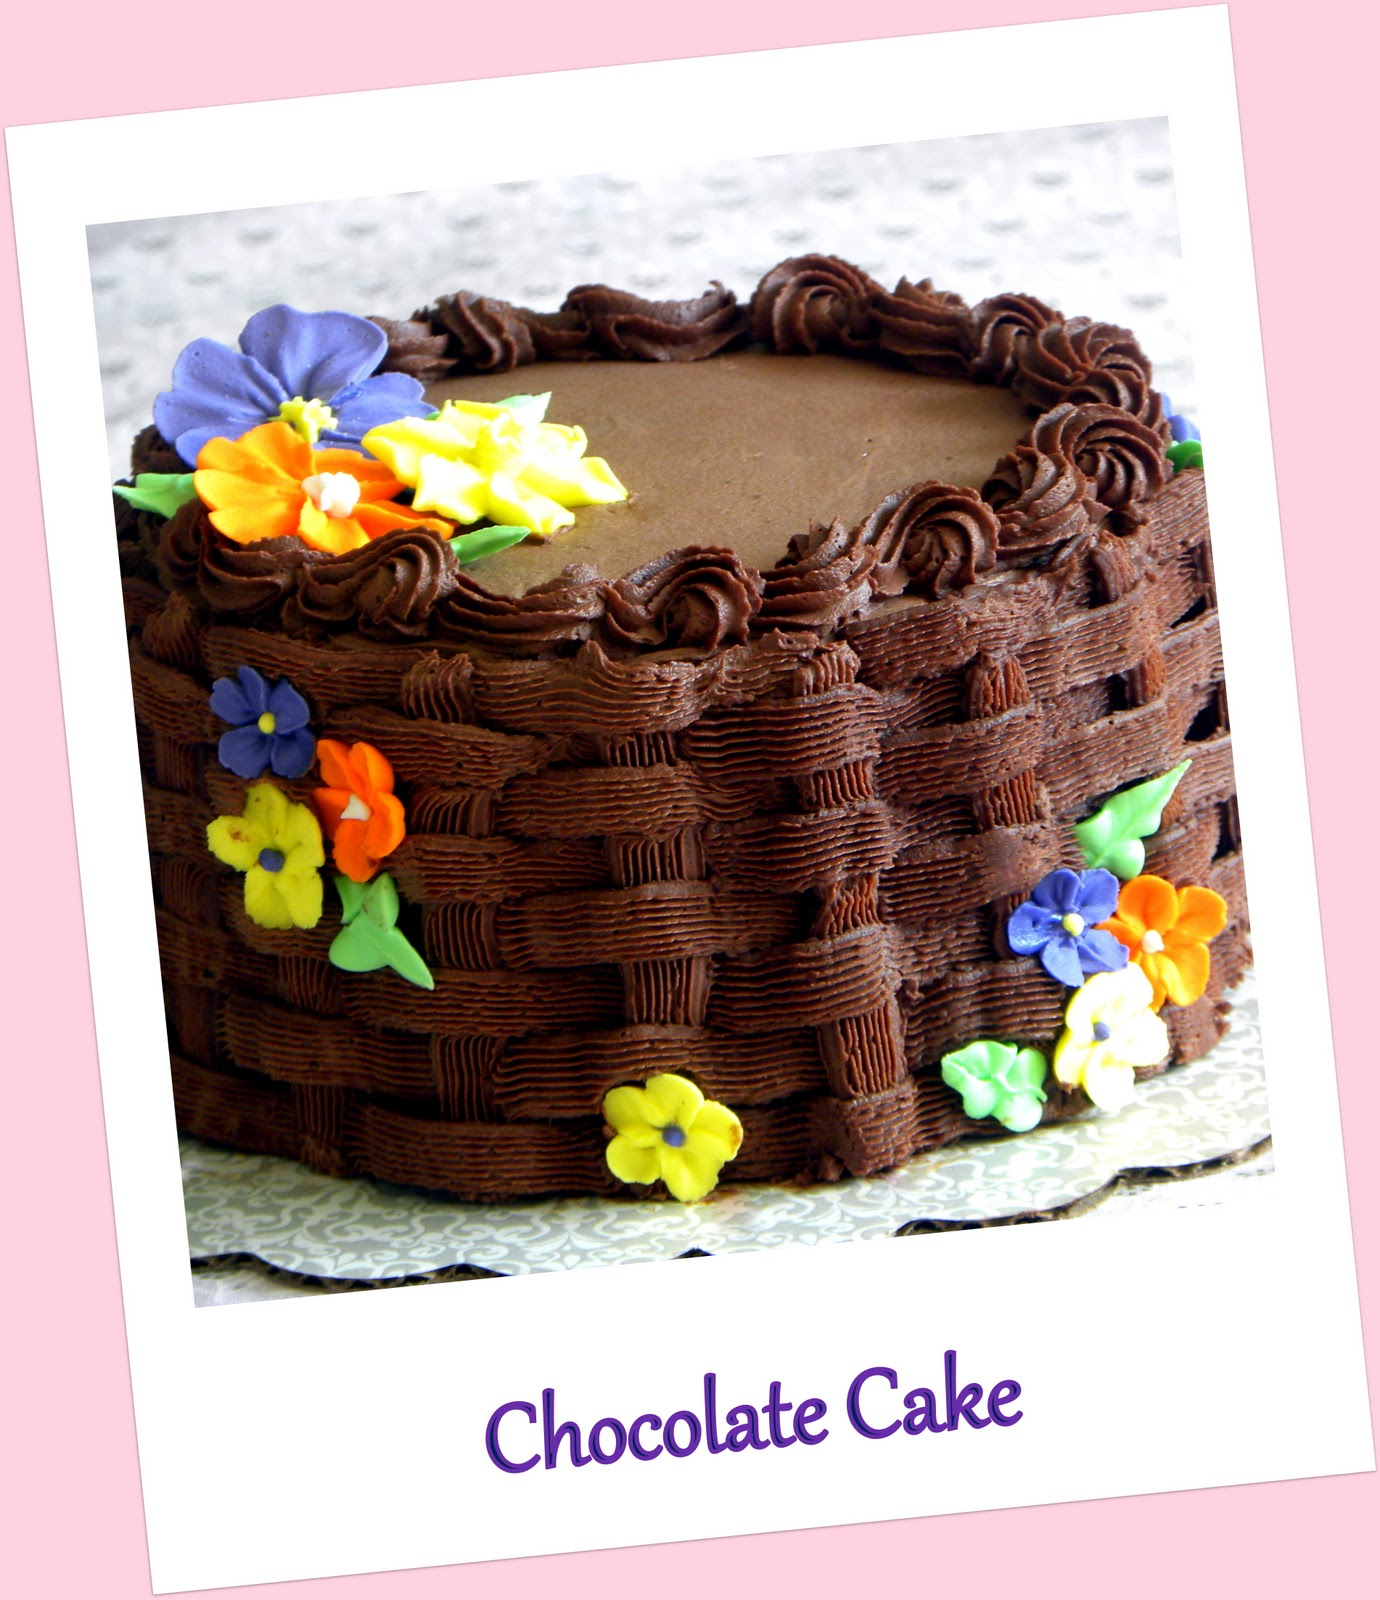 Wilton Cake Class Buttercream Recipe : Tasty Treats: Eggless Chocolate Cake with Chocolate ...